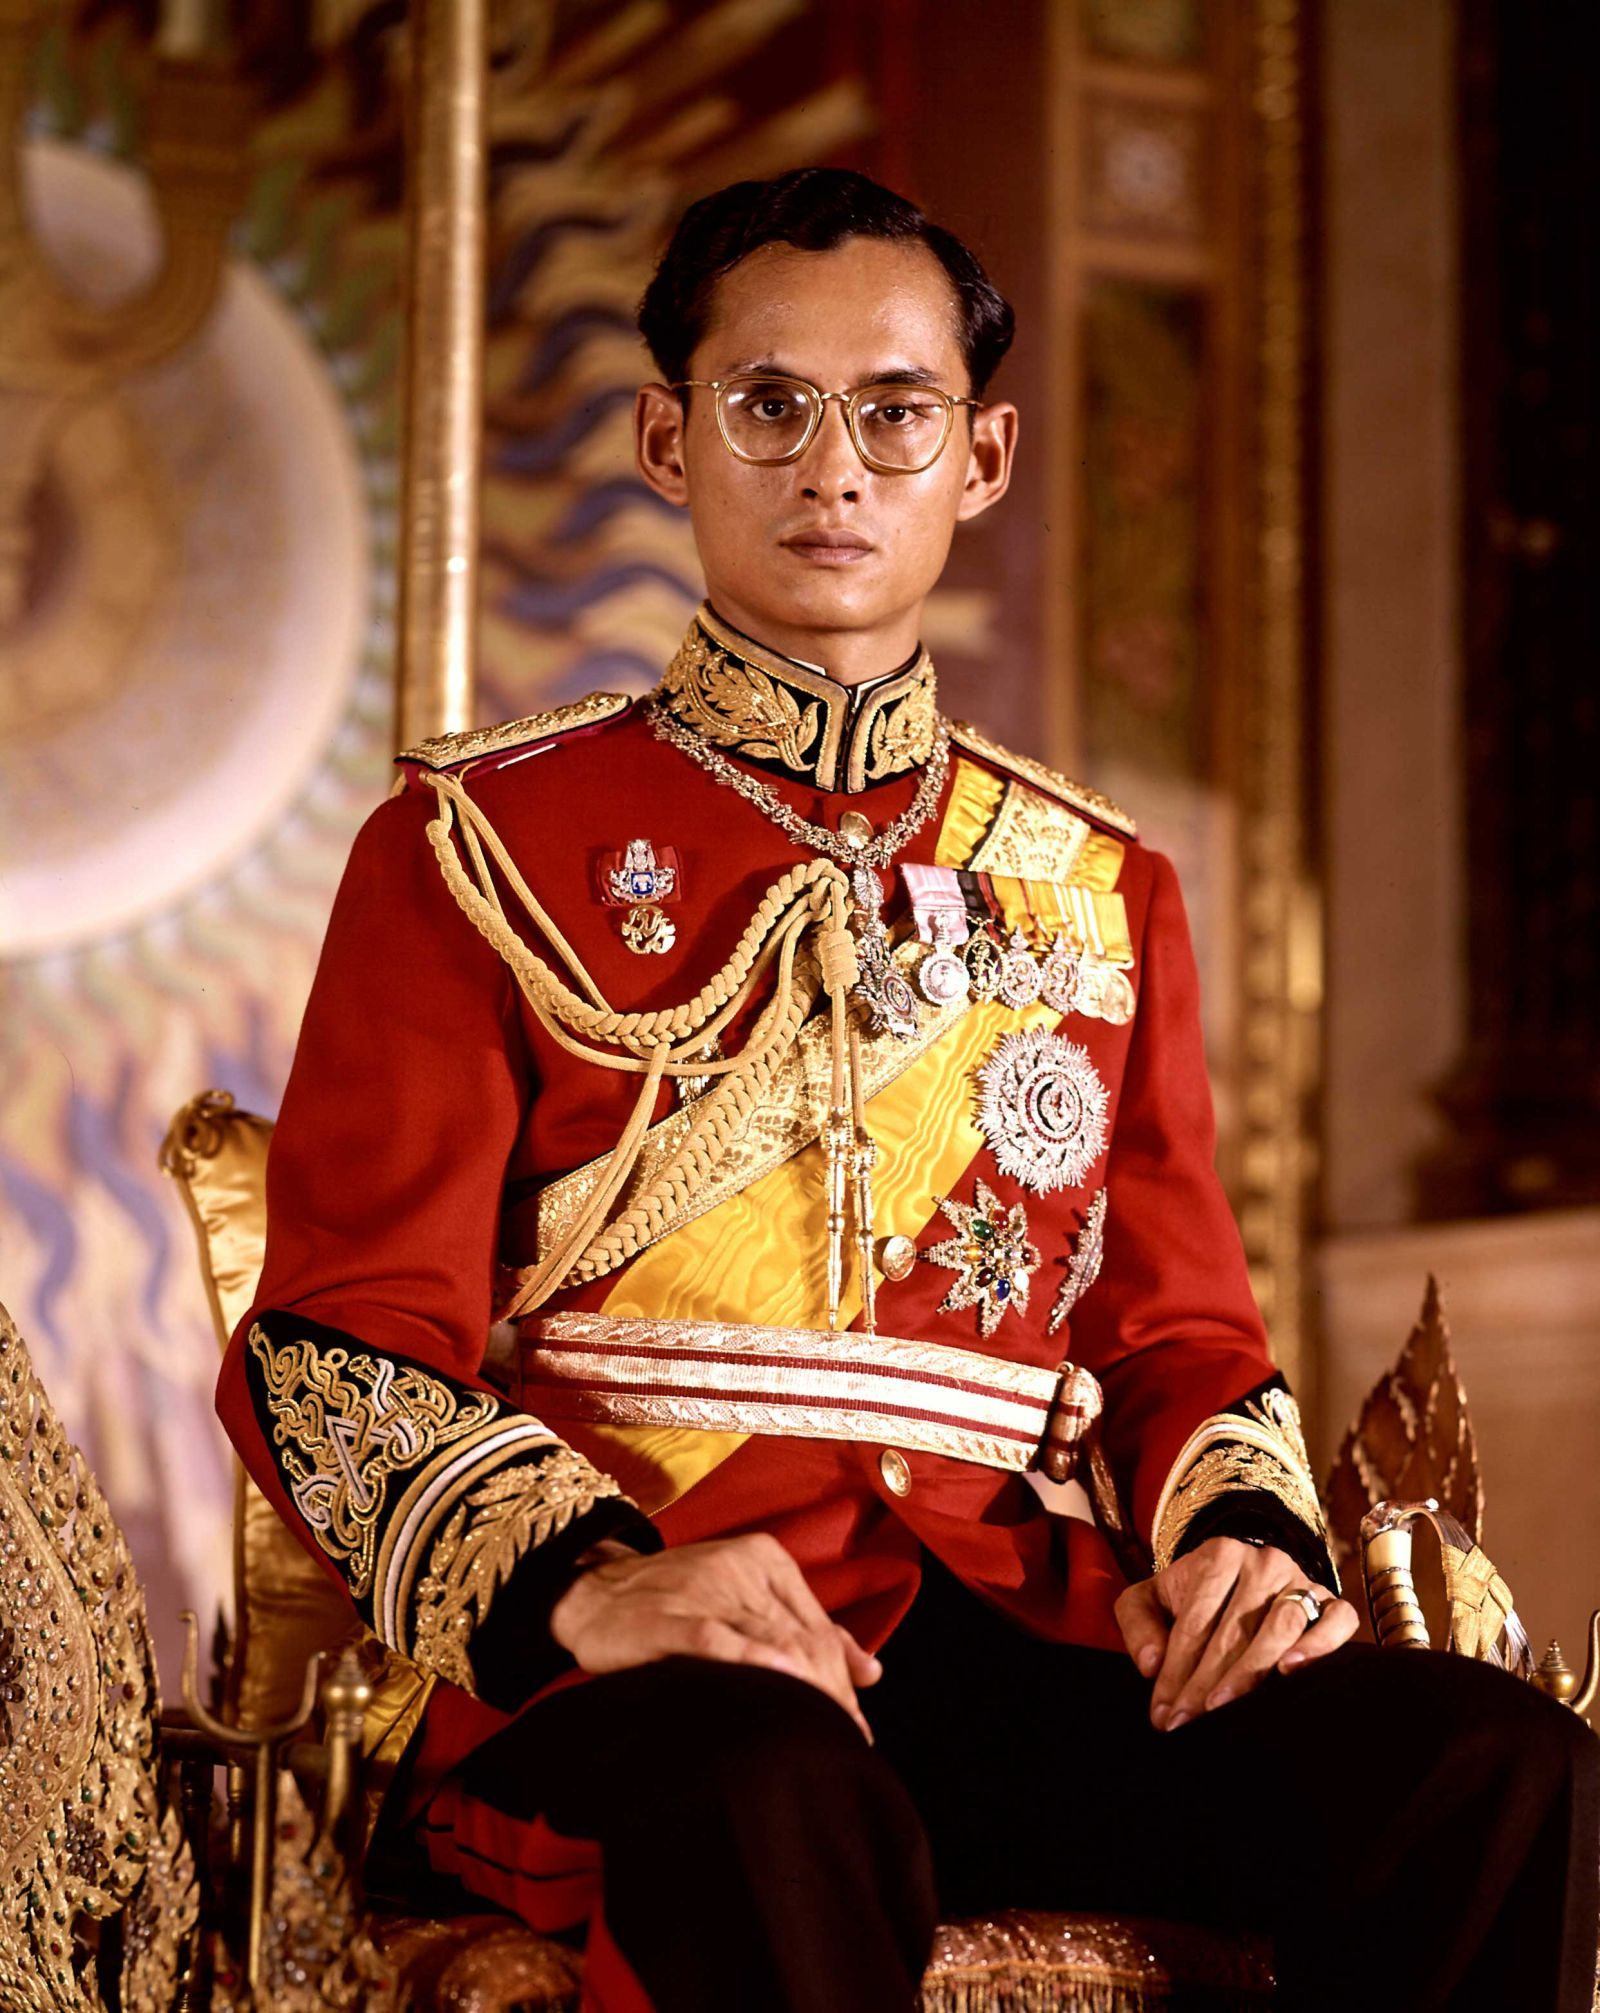 22 Images That Capture The Life And Reign Of Thailand S King Bhumibol Adulyadej King Bhumibol King Bhumibol Adulyadej Bhumibol